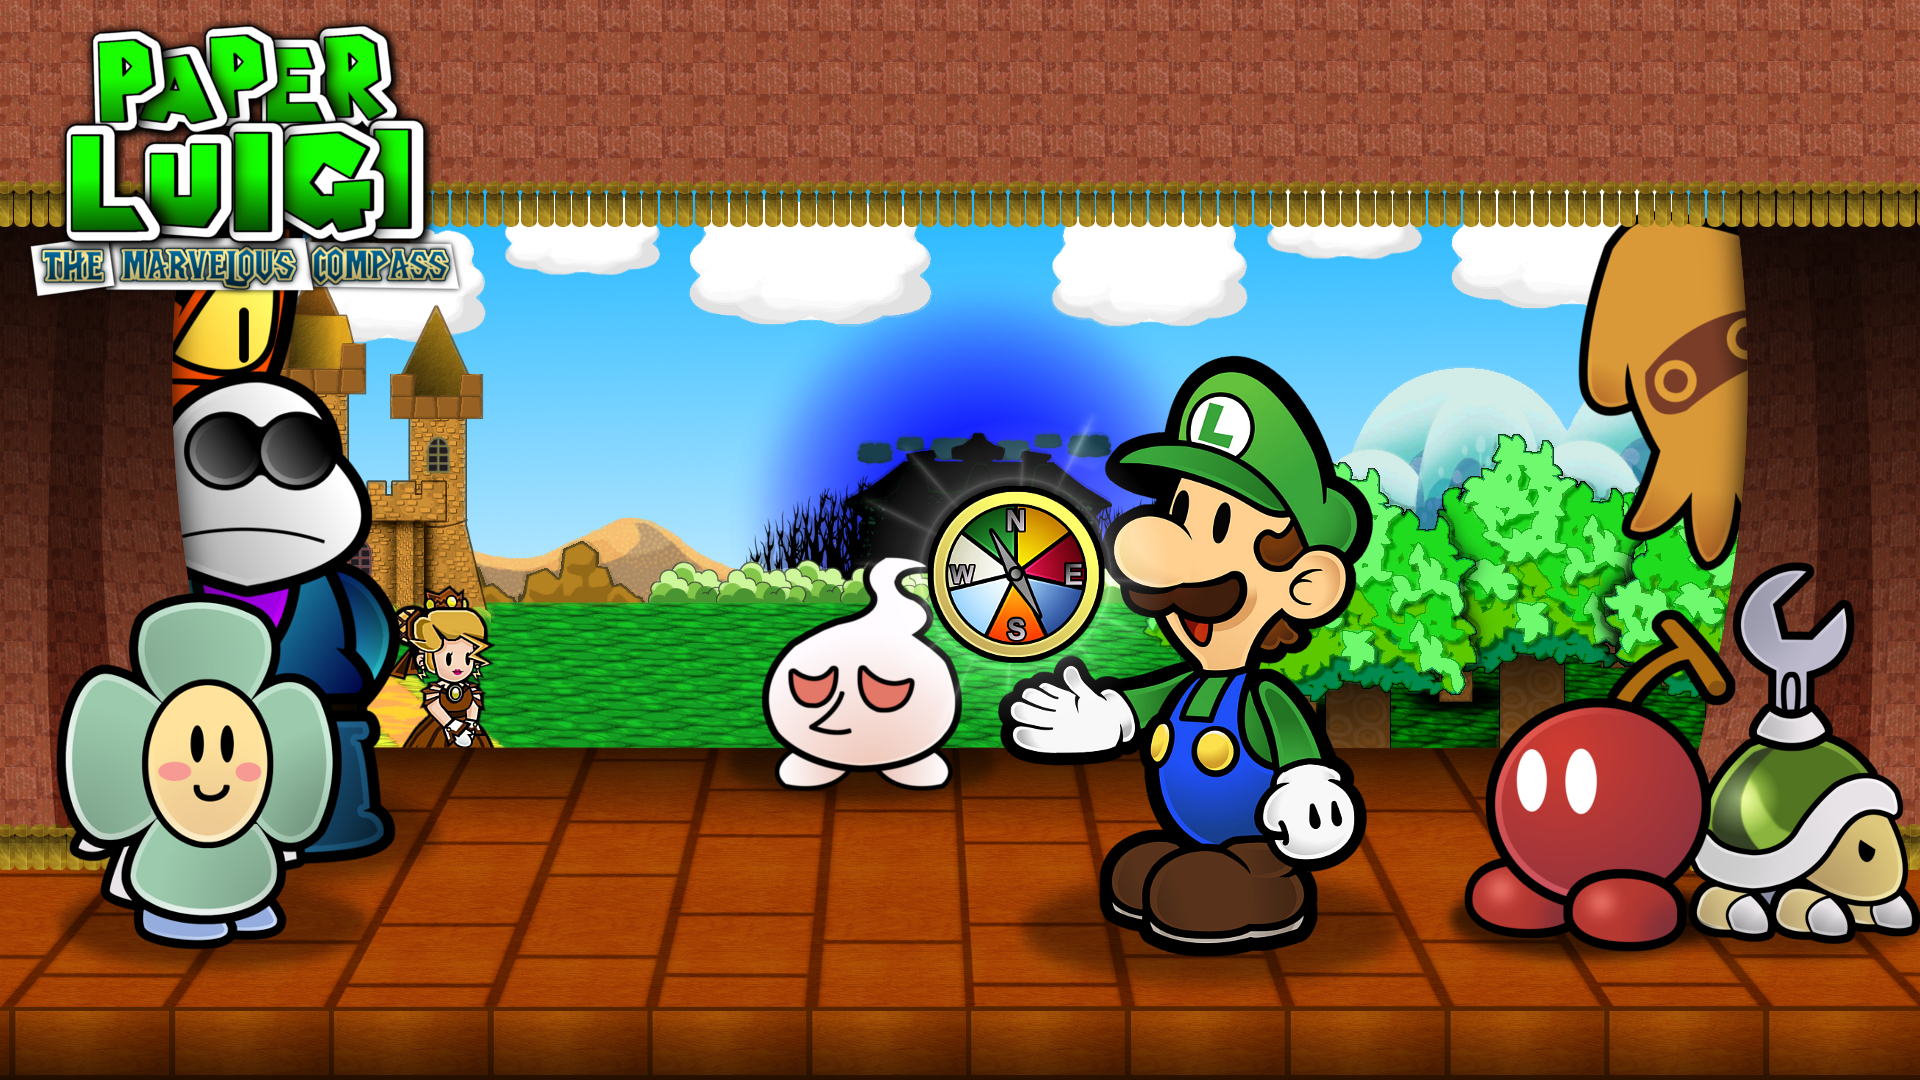 paper luigi Paper mario jumps out of the book and into the bizarre adventures of mario & luigi, resulting in hilarious and dangerous hijinks become the superstar team of mario, mario and luigi paper jam bros to take on quests, take down enemies and untangle these two unique universes in this playful new entry in the mario & luigi series.